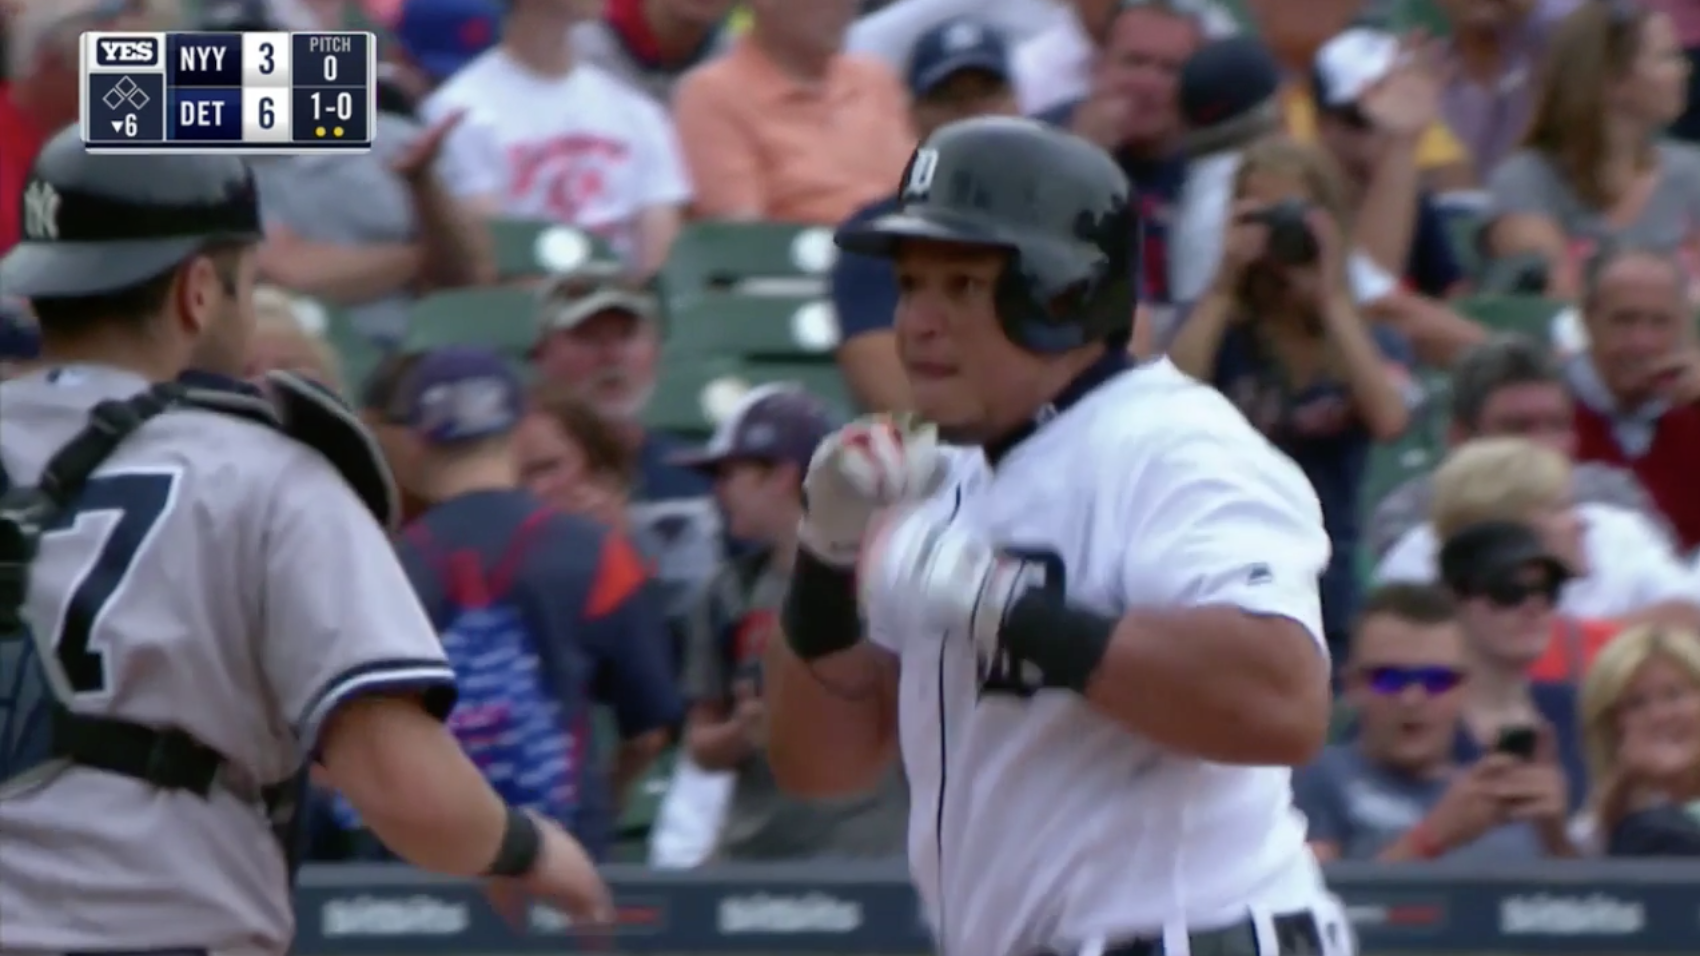 Miguel Cabrera throws punch at Yankees catcher as wild brawl erupts